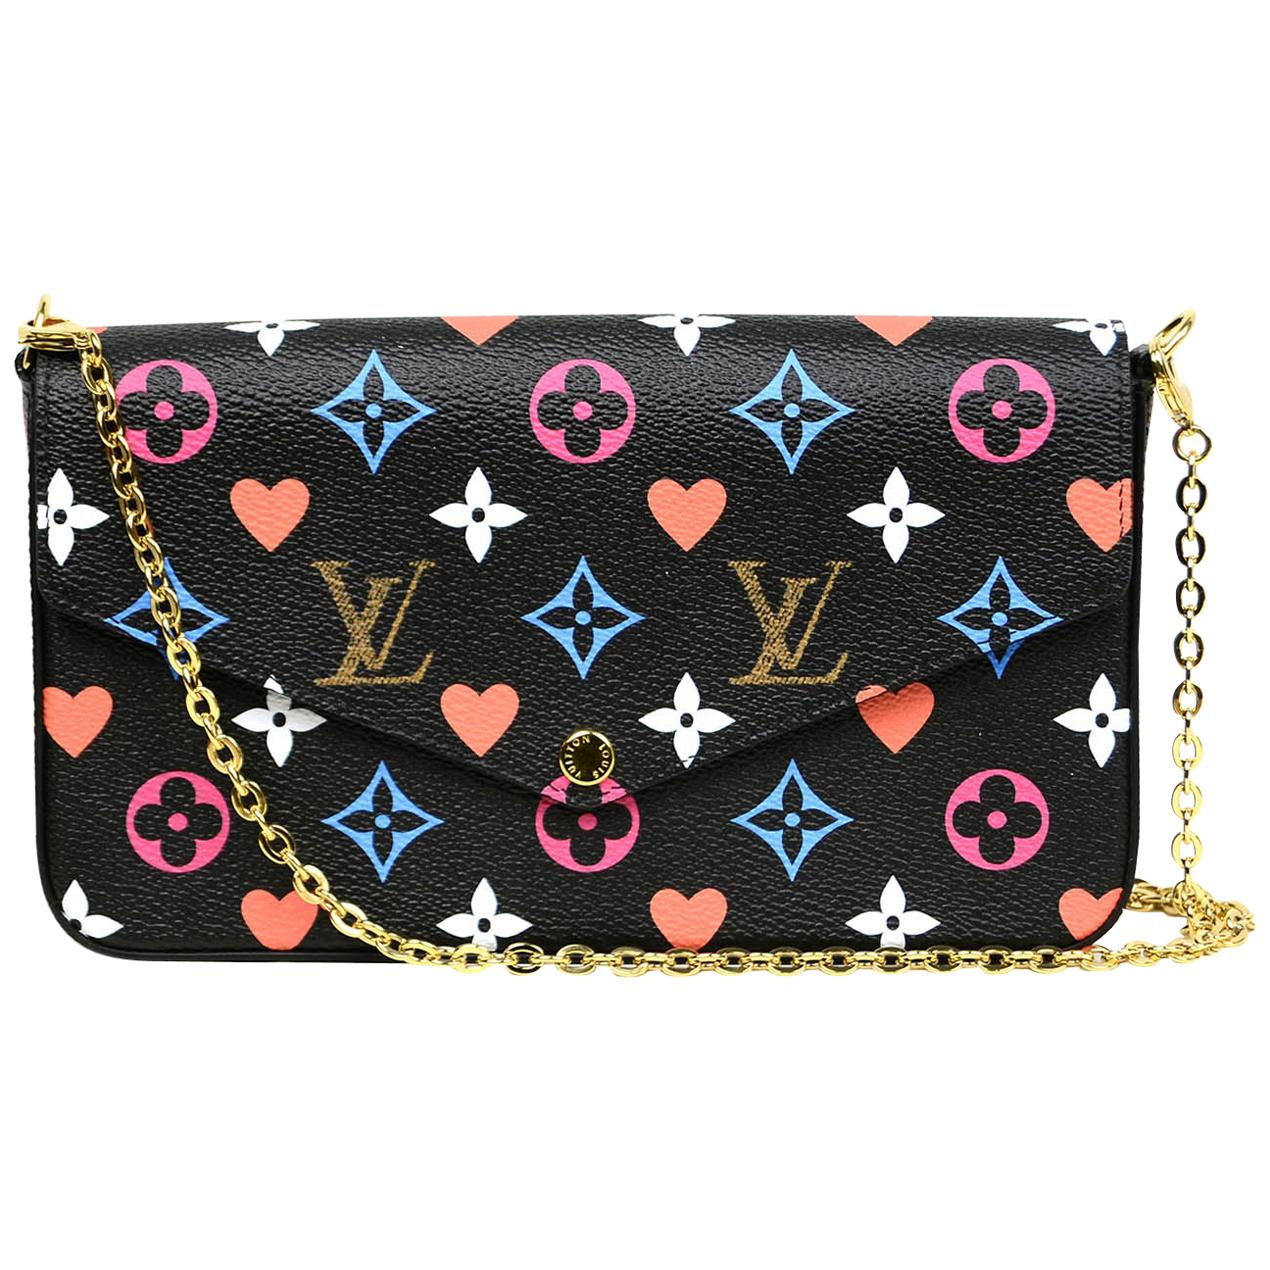 Louis Vuitton Black Monogram Game On Felicie Chain Wallet Crossbody Bag